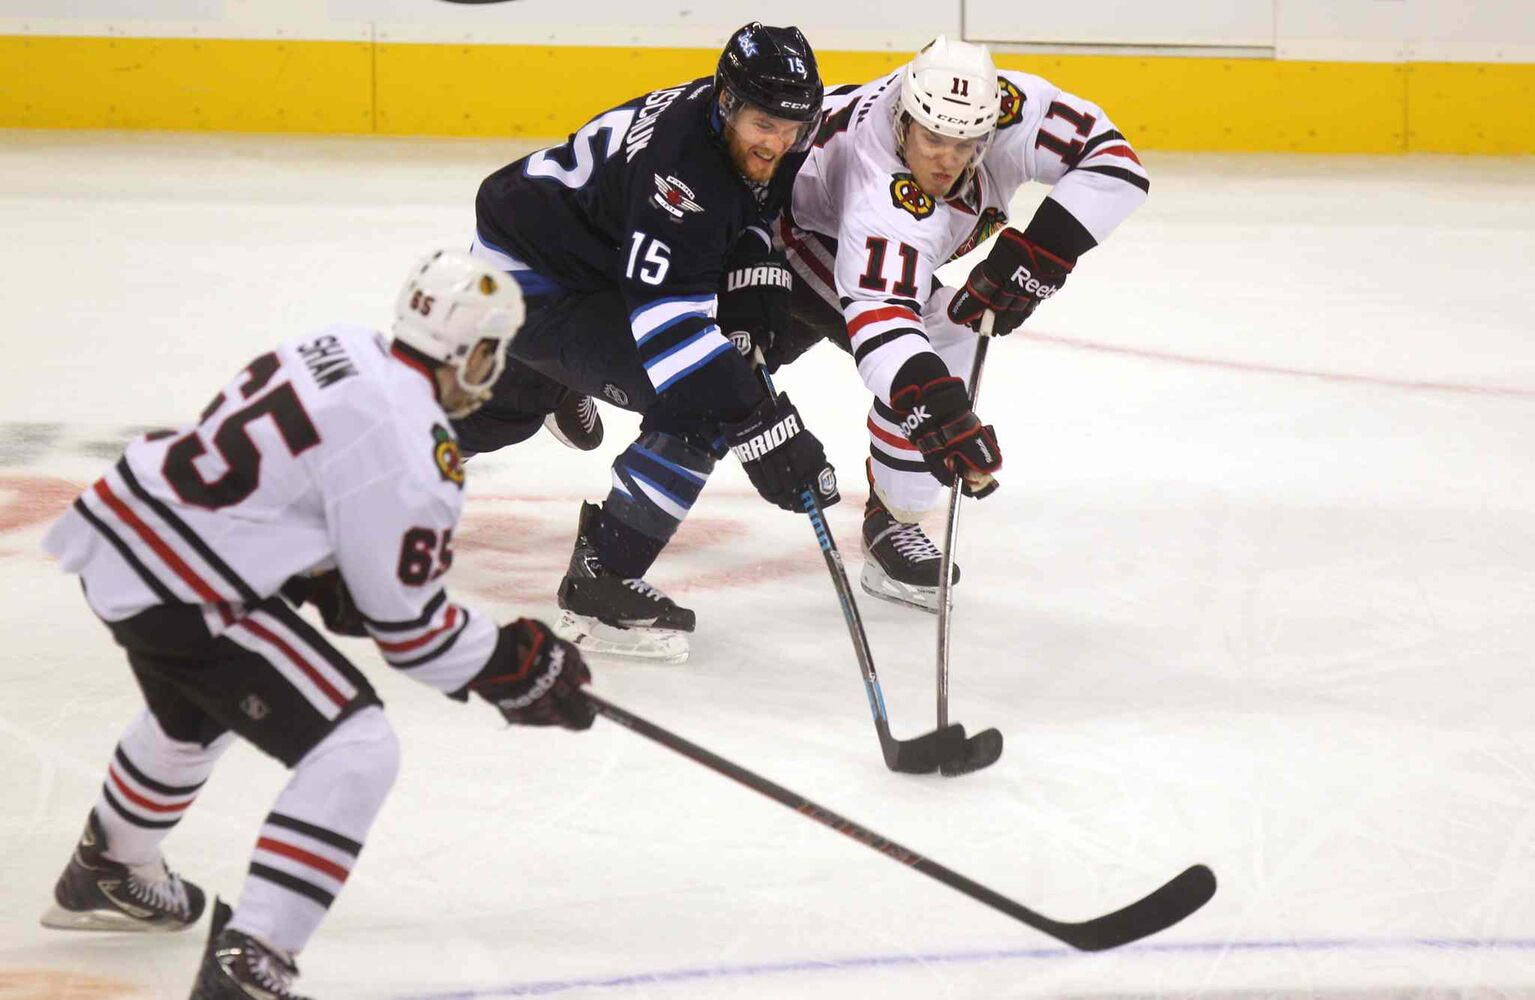 Matt Halischuk (centre) tries to get the puck from Jeremy Morin (right) during the third period. (Ruth Bonneville / Winnipeg Free Press)